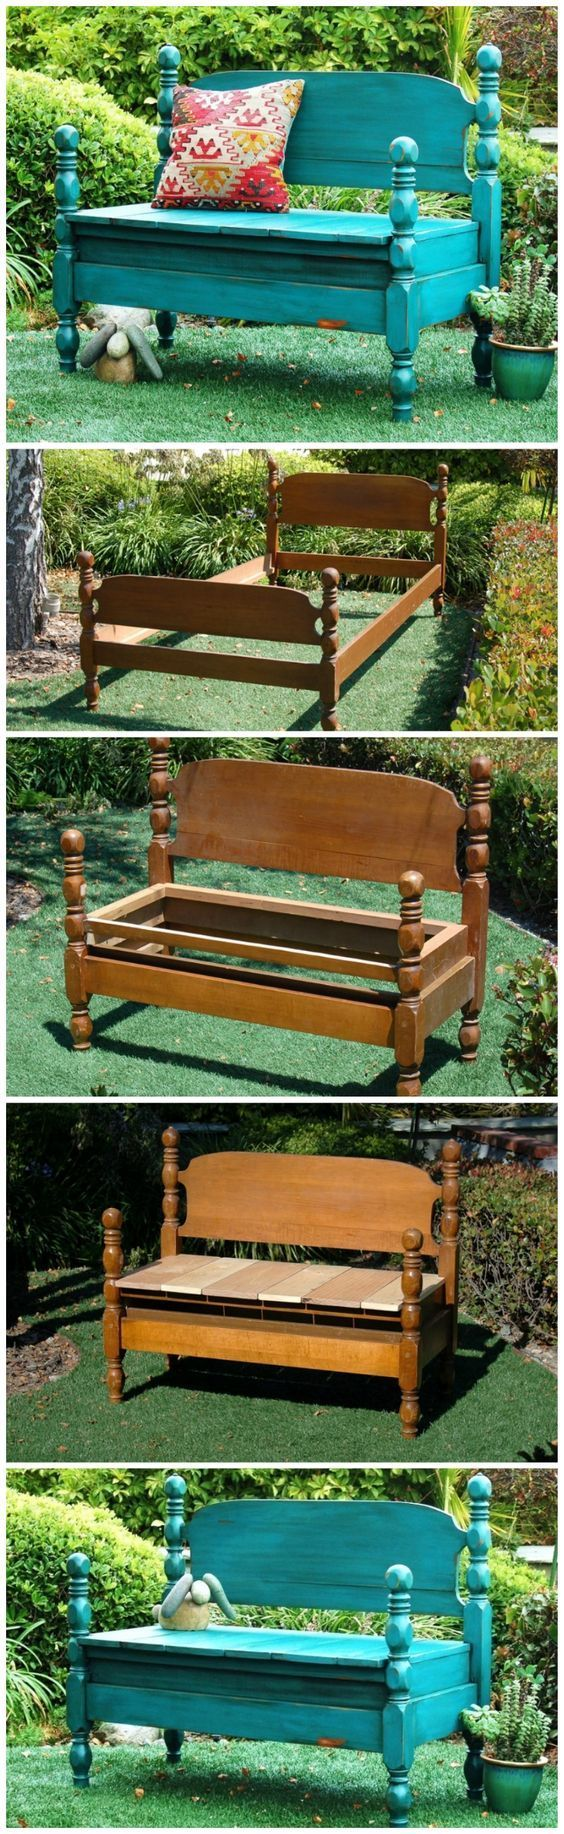 Turn an old bed into a garden bench for an undeniably adorable DIY project